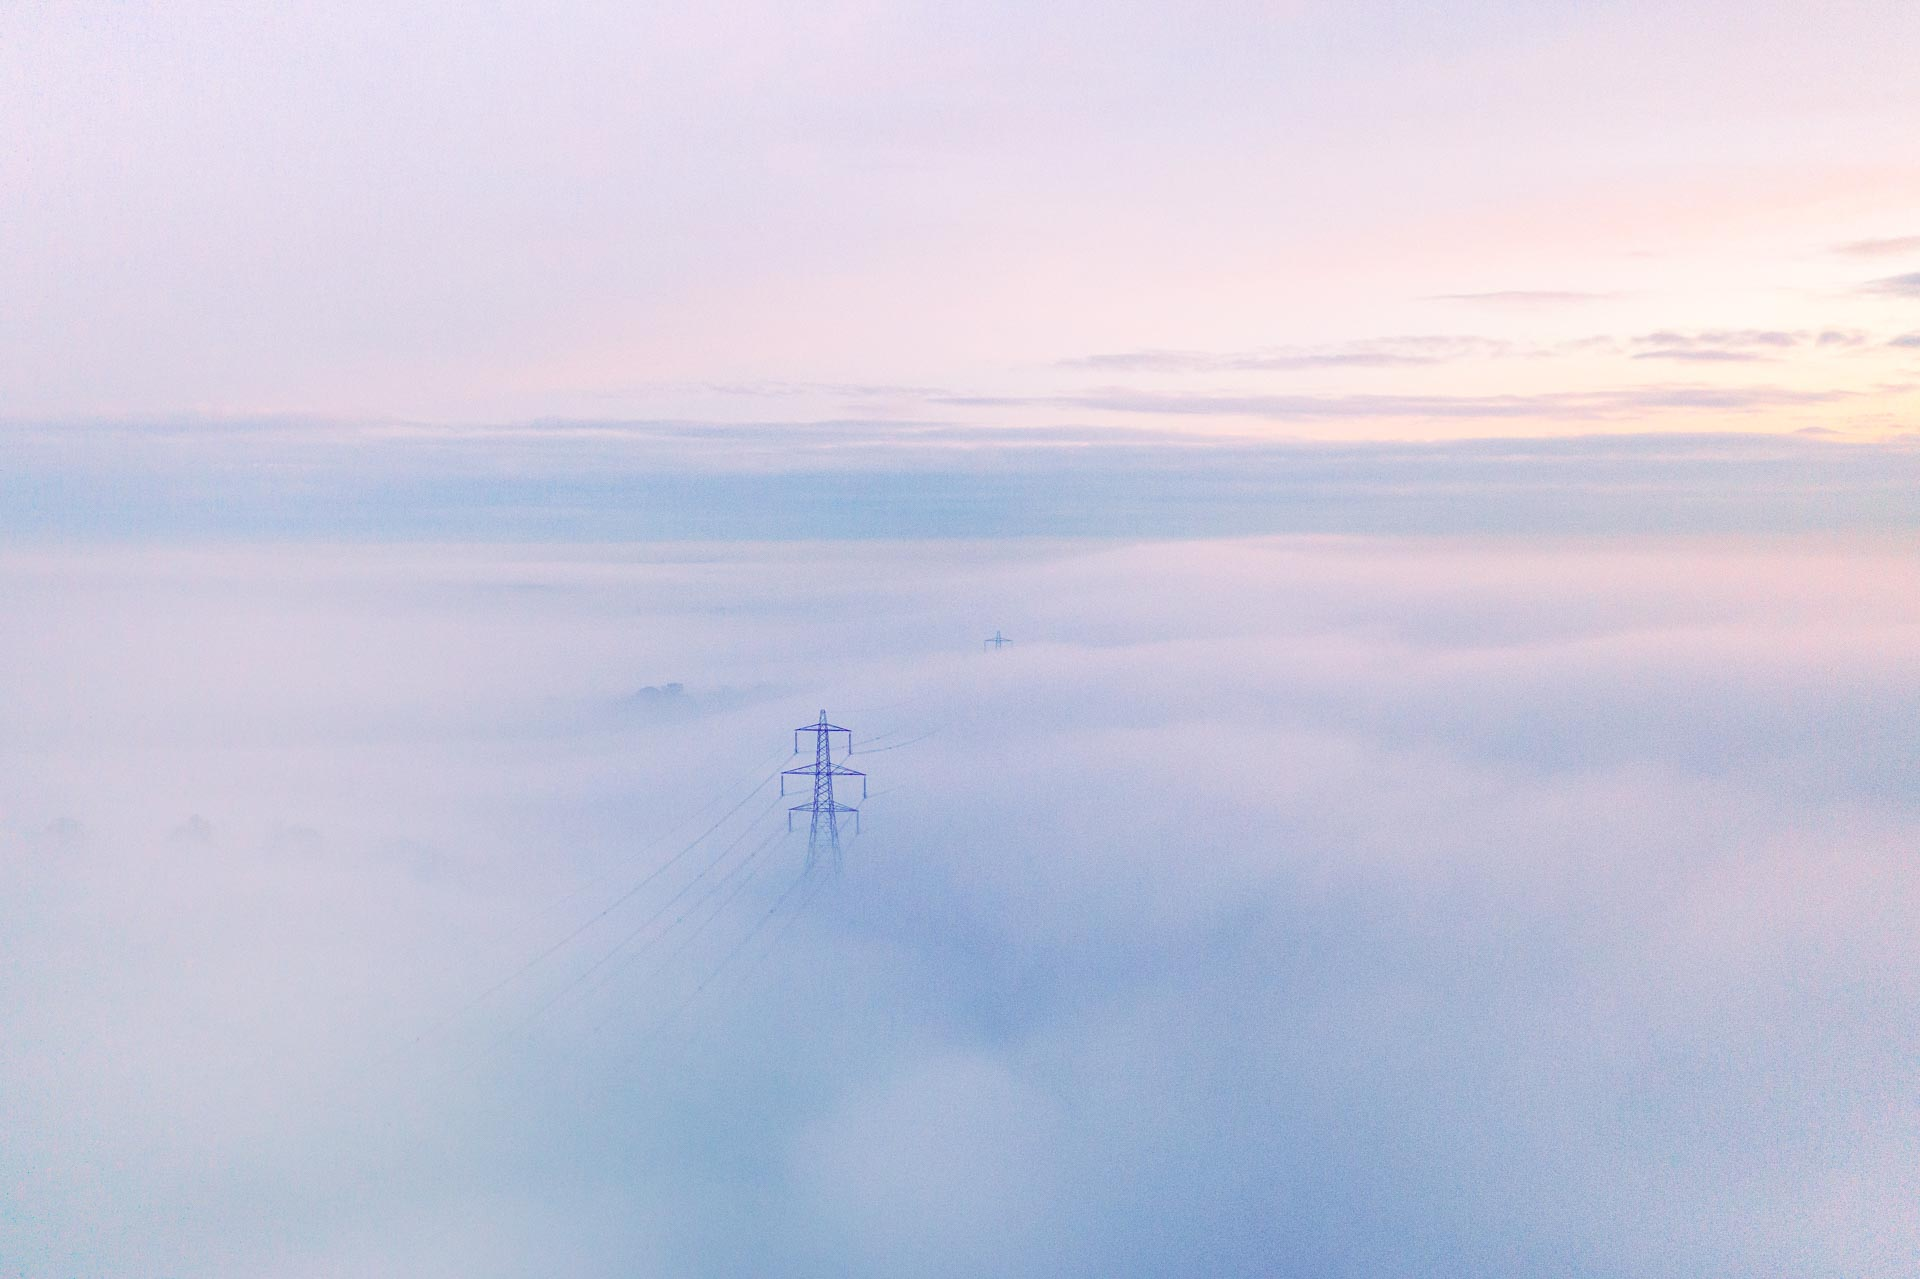 Power lines / pylons cut through the top of the misty landscape, taken from a drone point of view